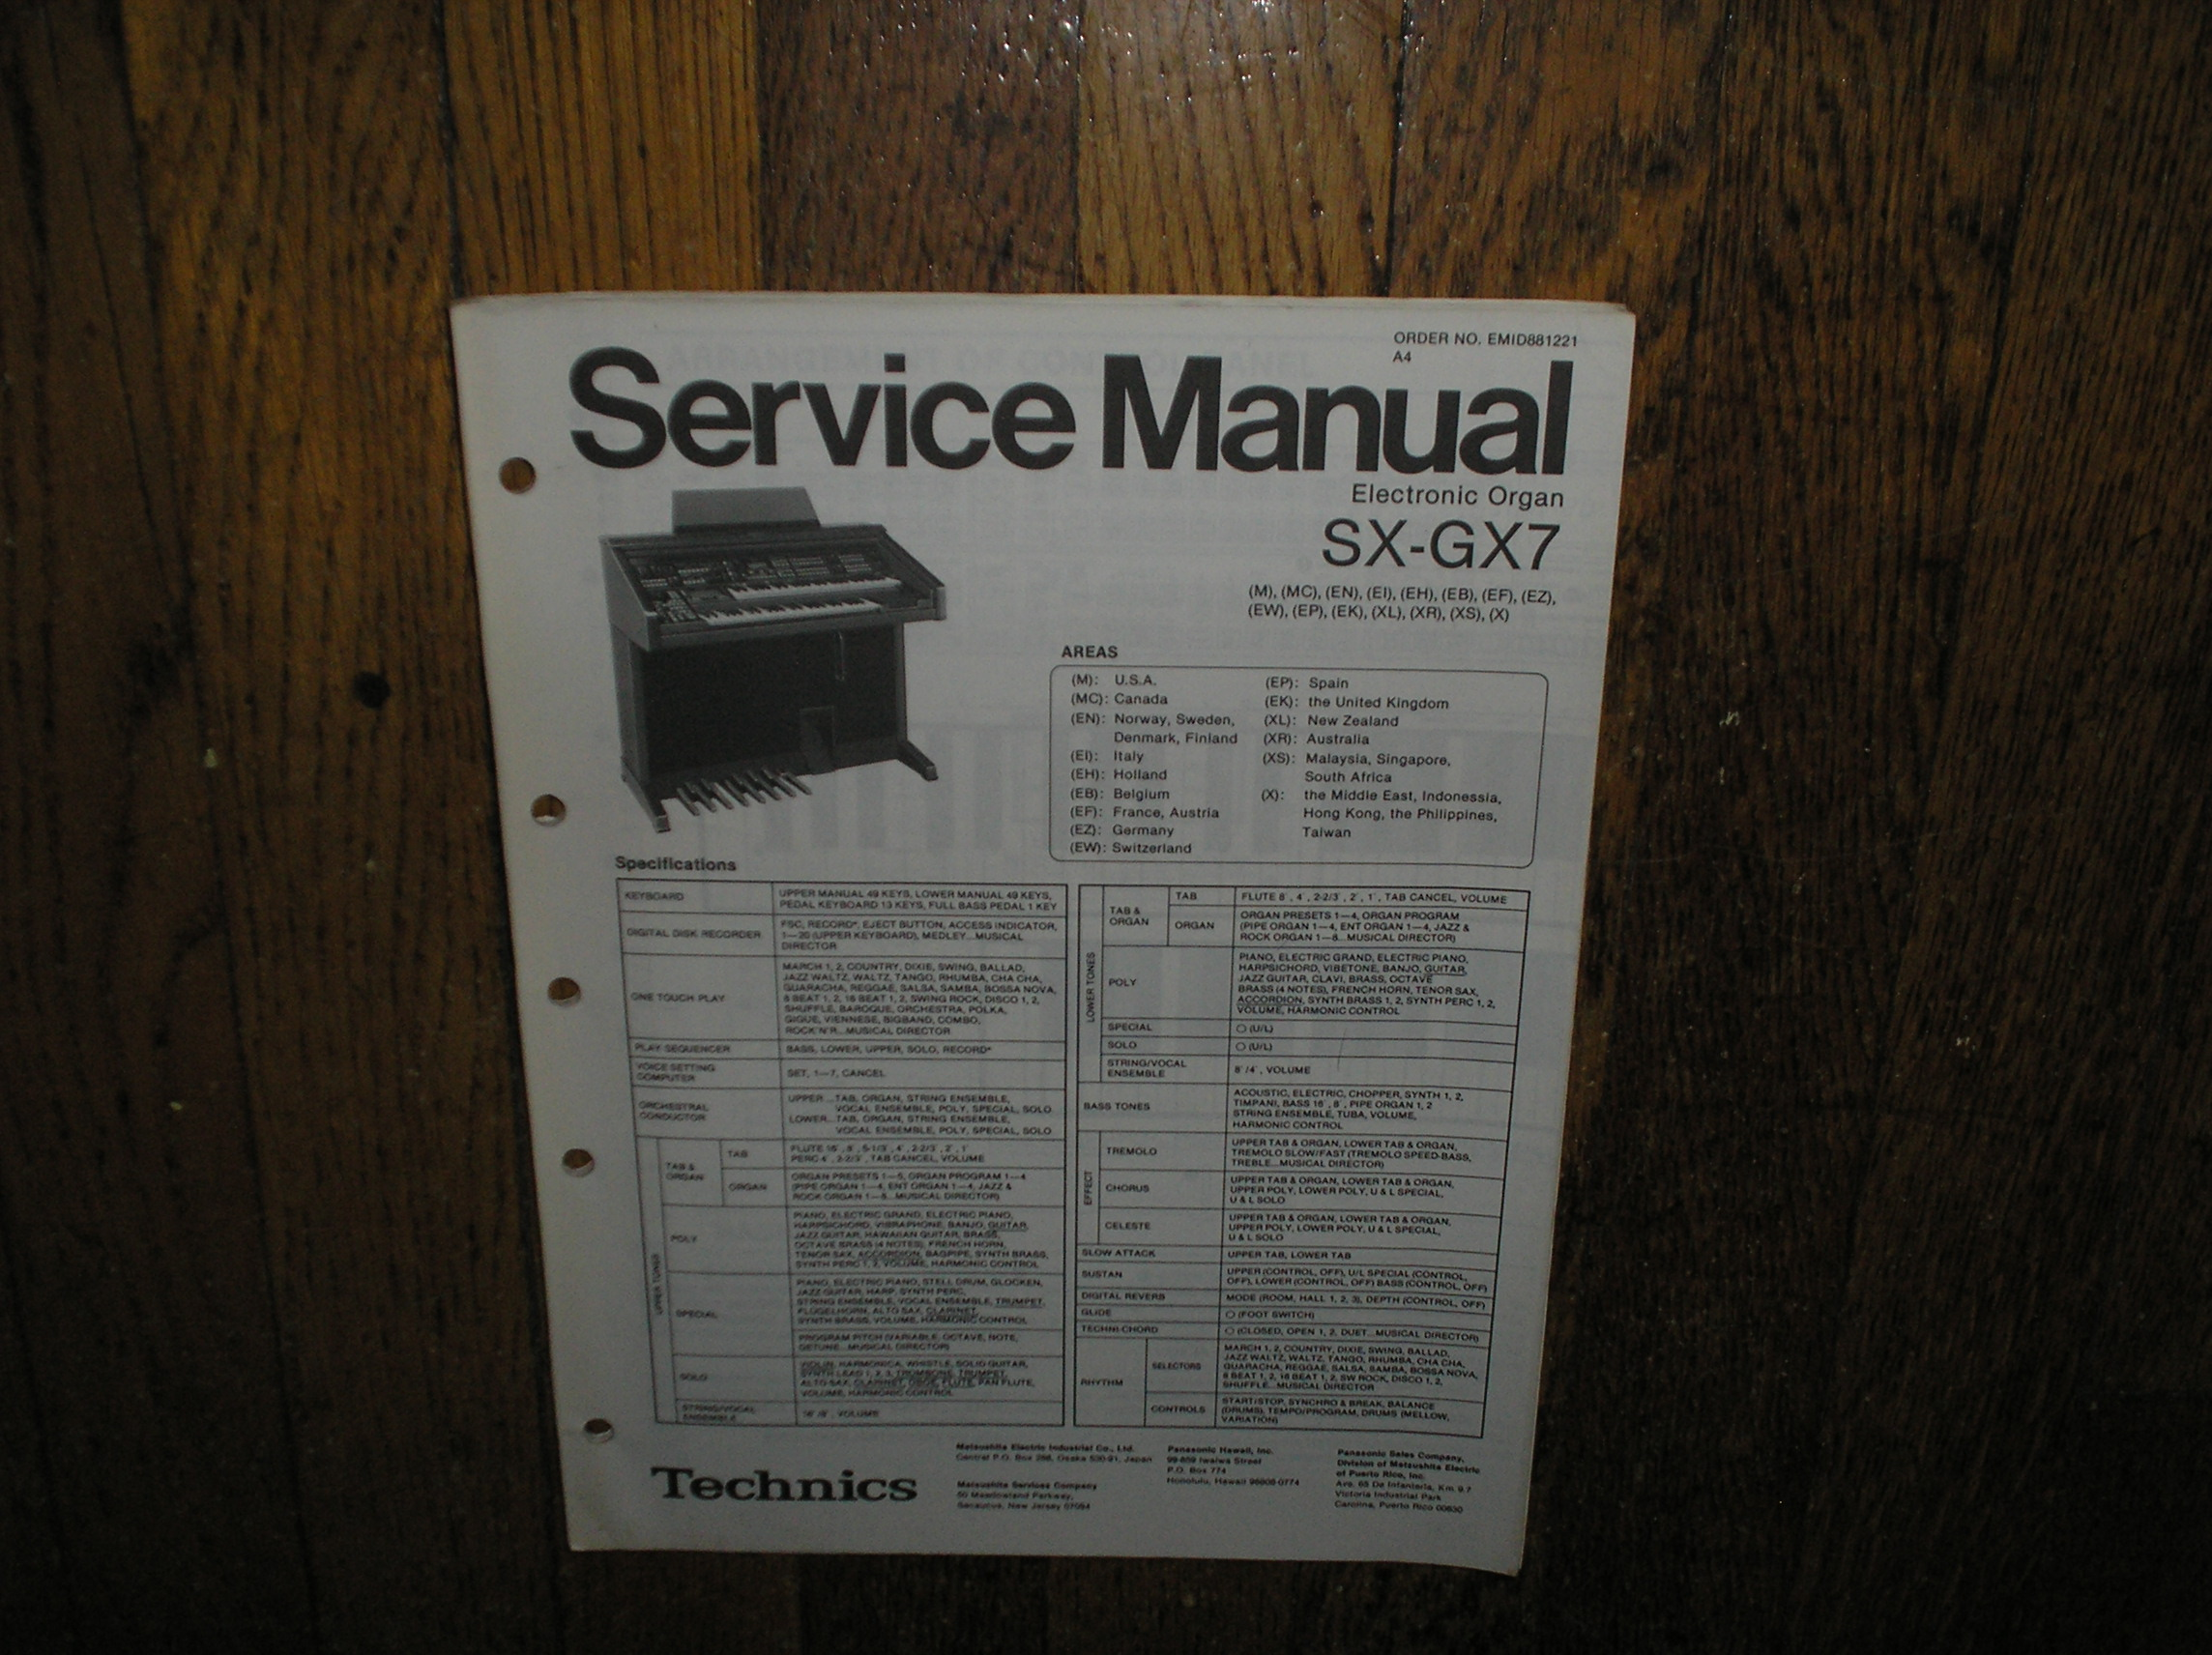 SX-GX7 Electric Organ Service Manual